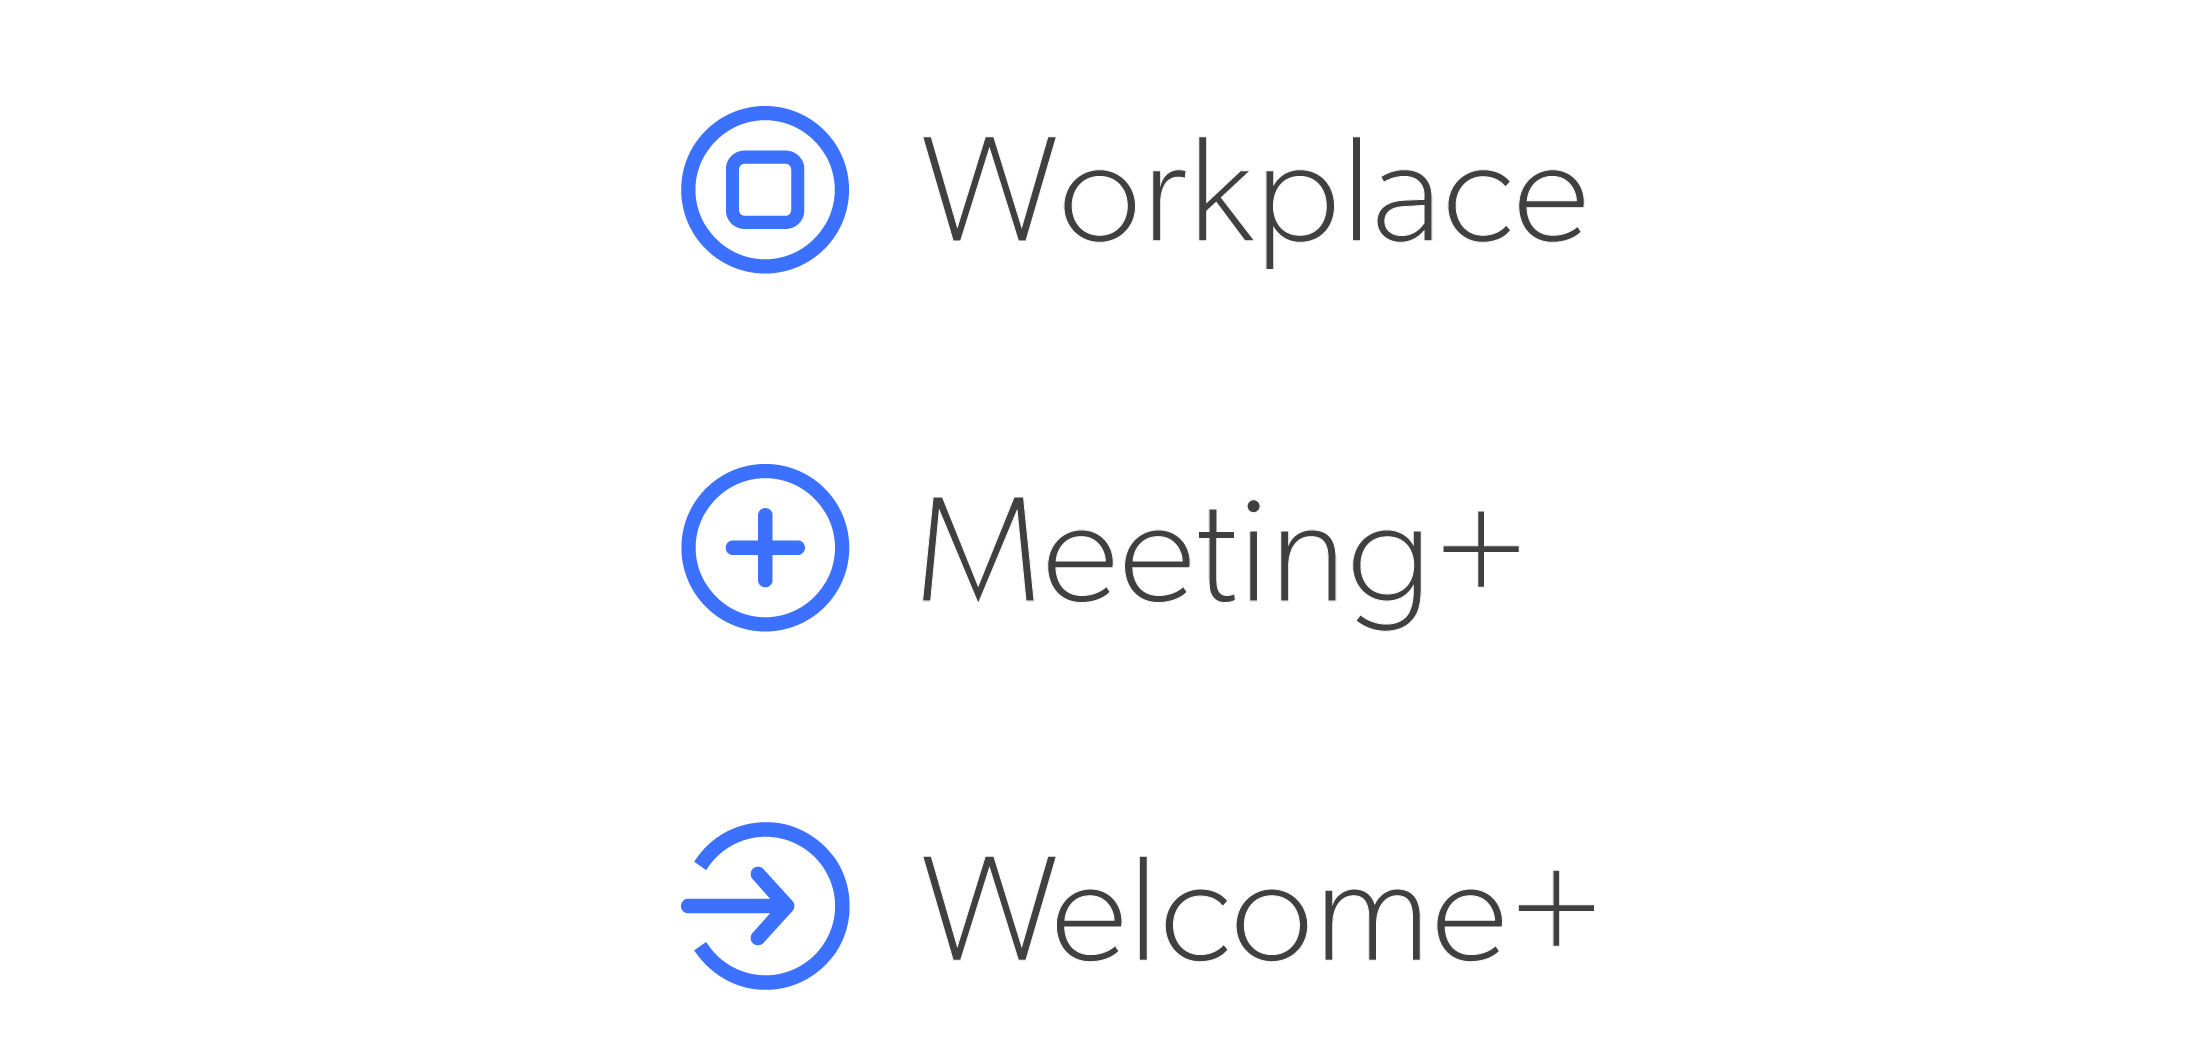 New icons for Workplace, Meeting+ and Welcome+